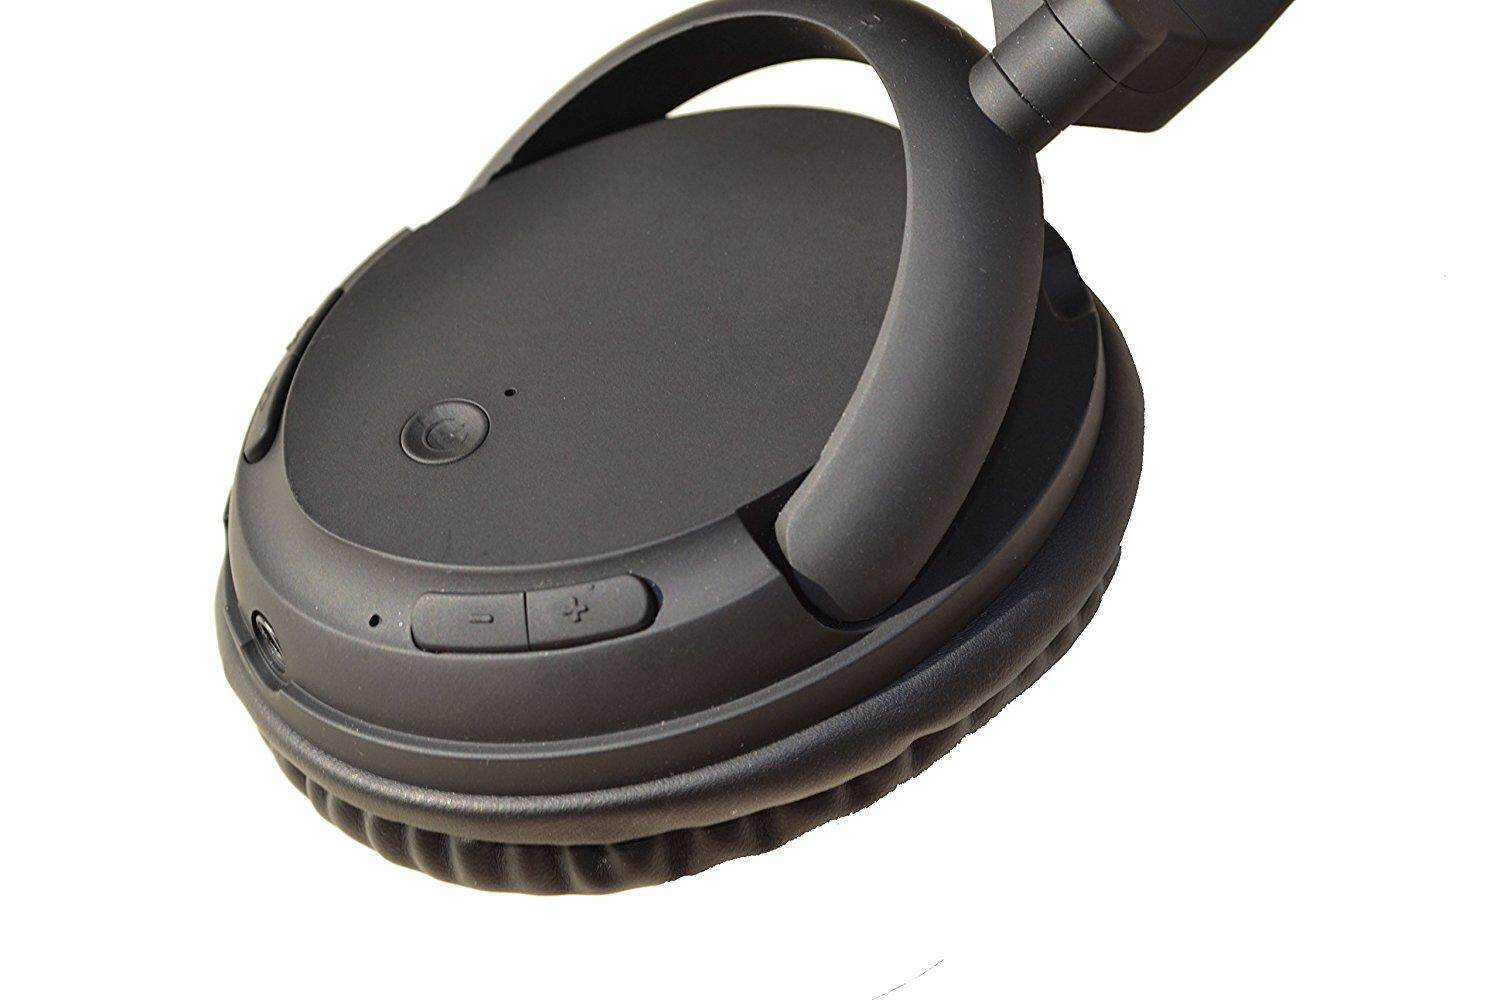 ... Bluetooth Headphones V4.0 Comfortable Wireless Headset with Built-in Mic & Wired Connect ...